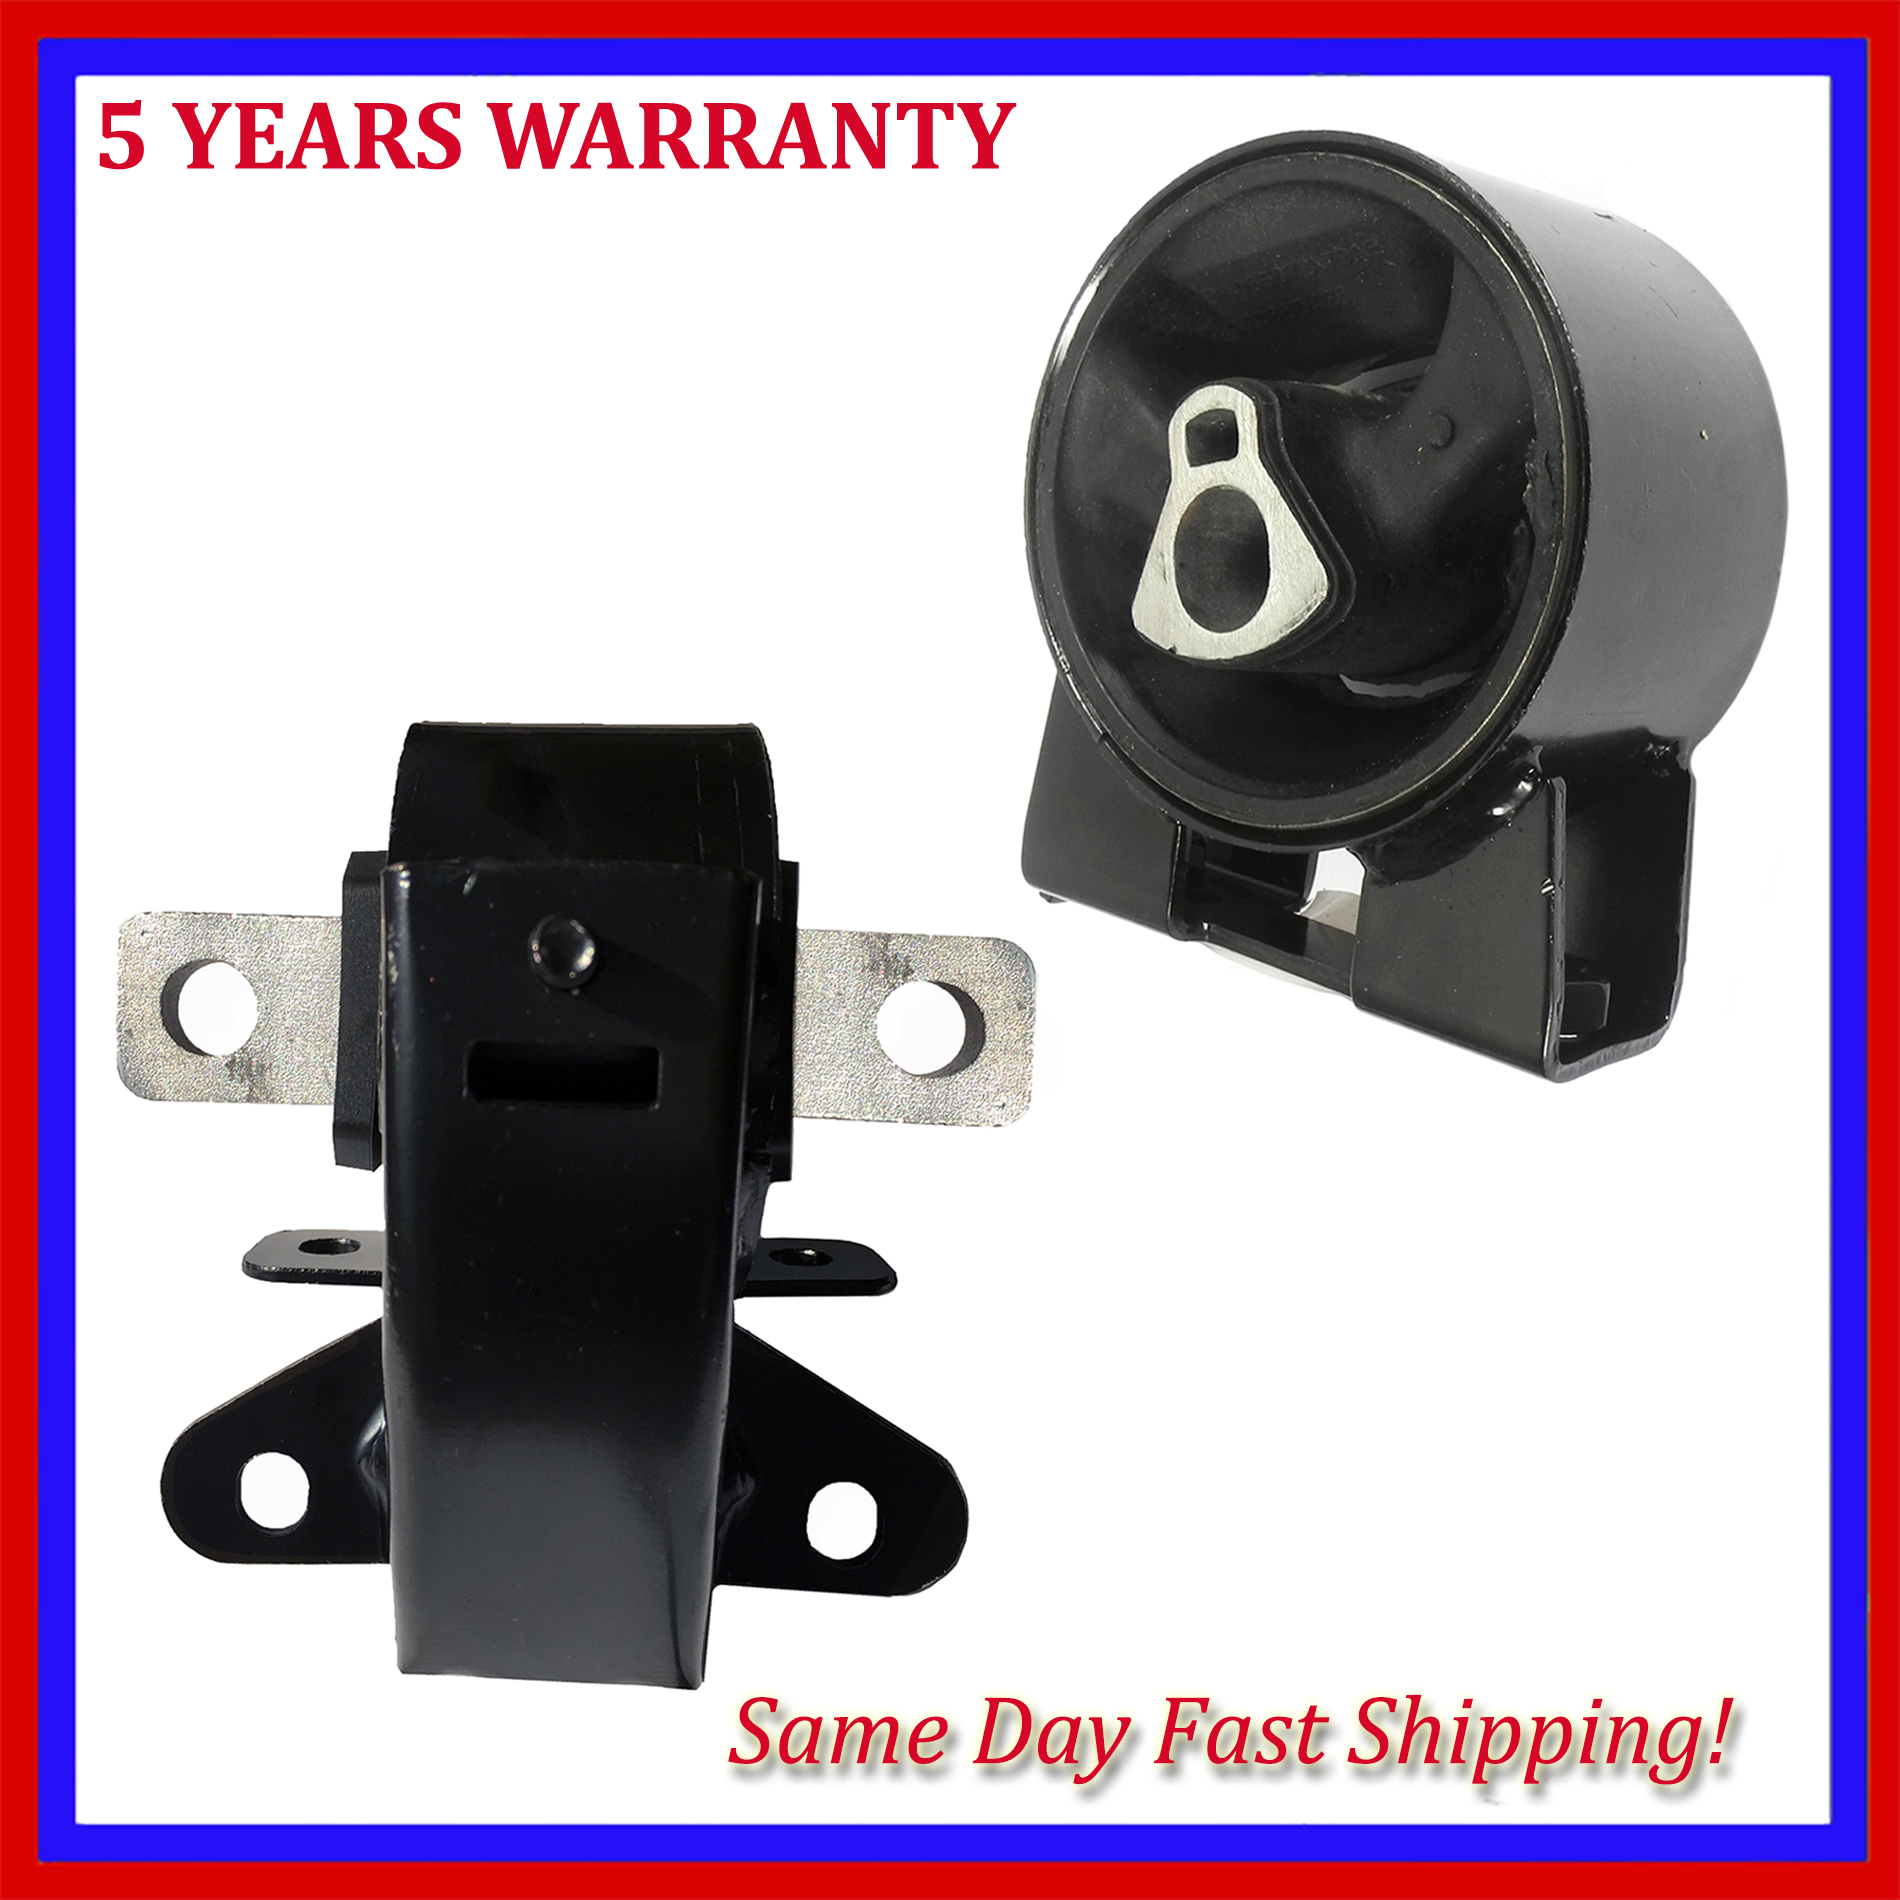 Transmission Motor /& Engine Mount fits for Chrysler Town /& Country 11-16